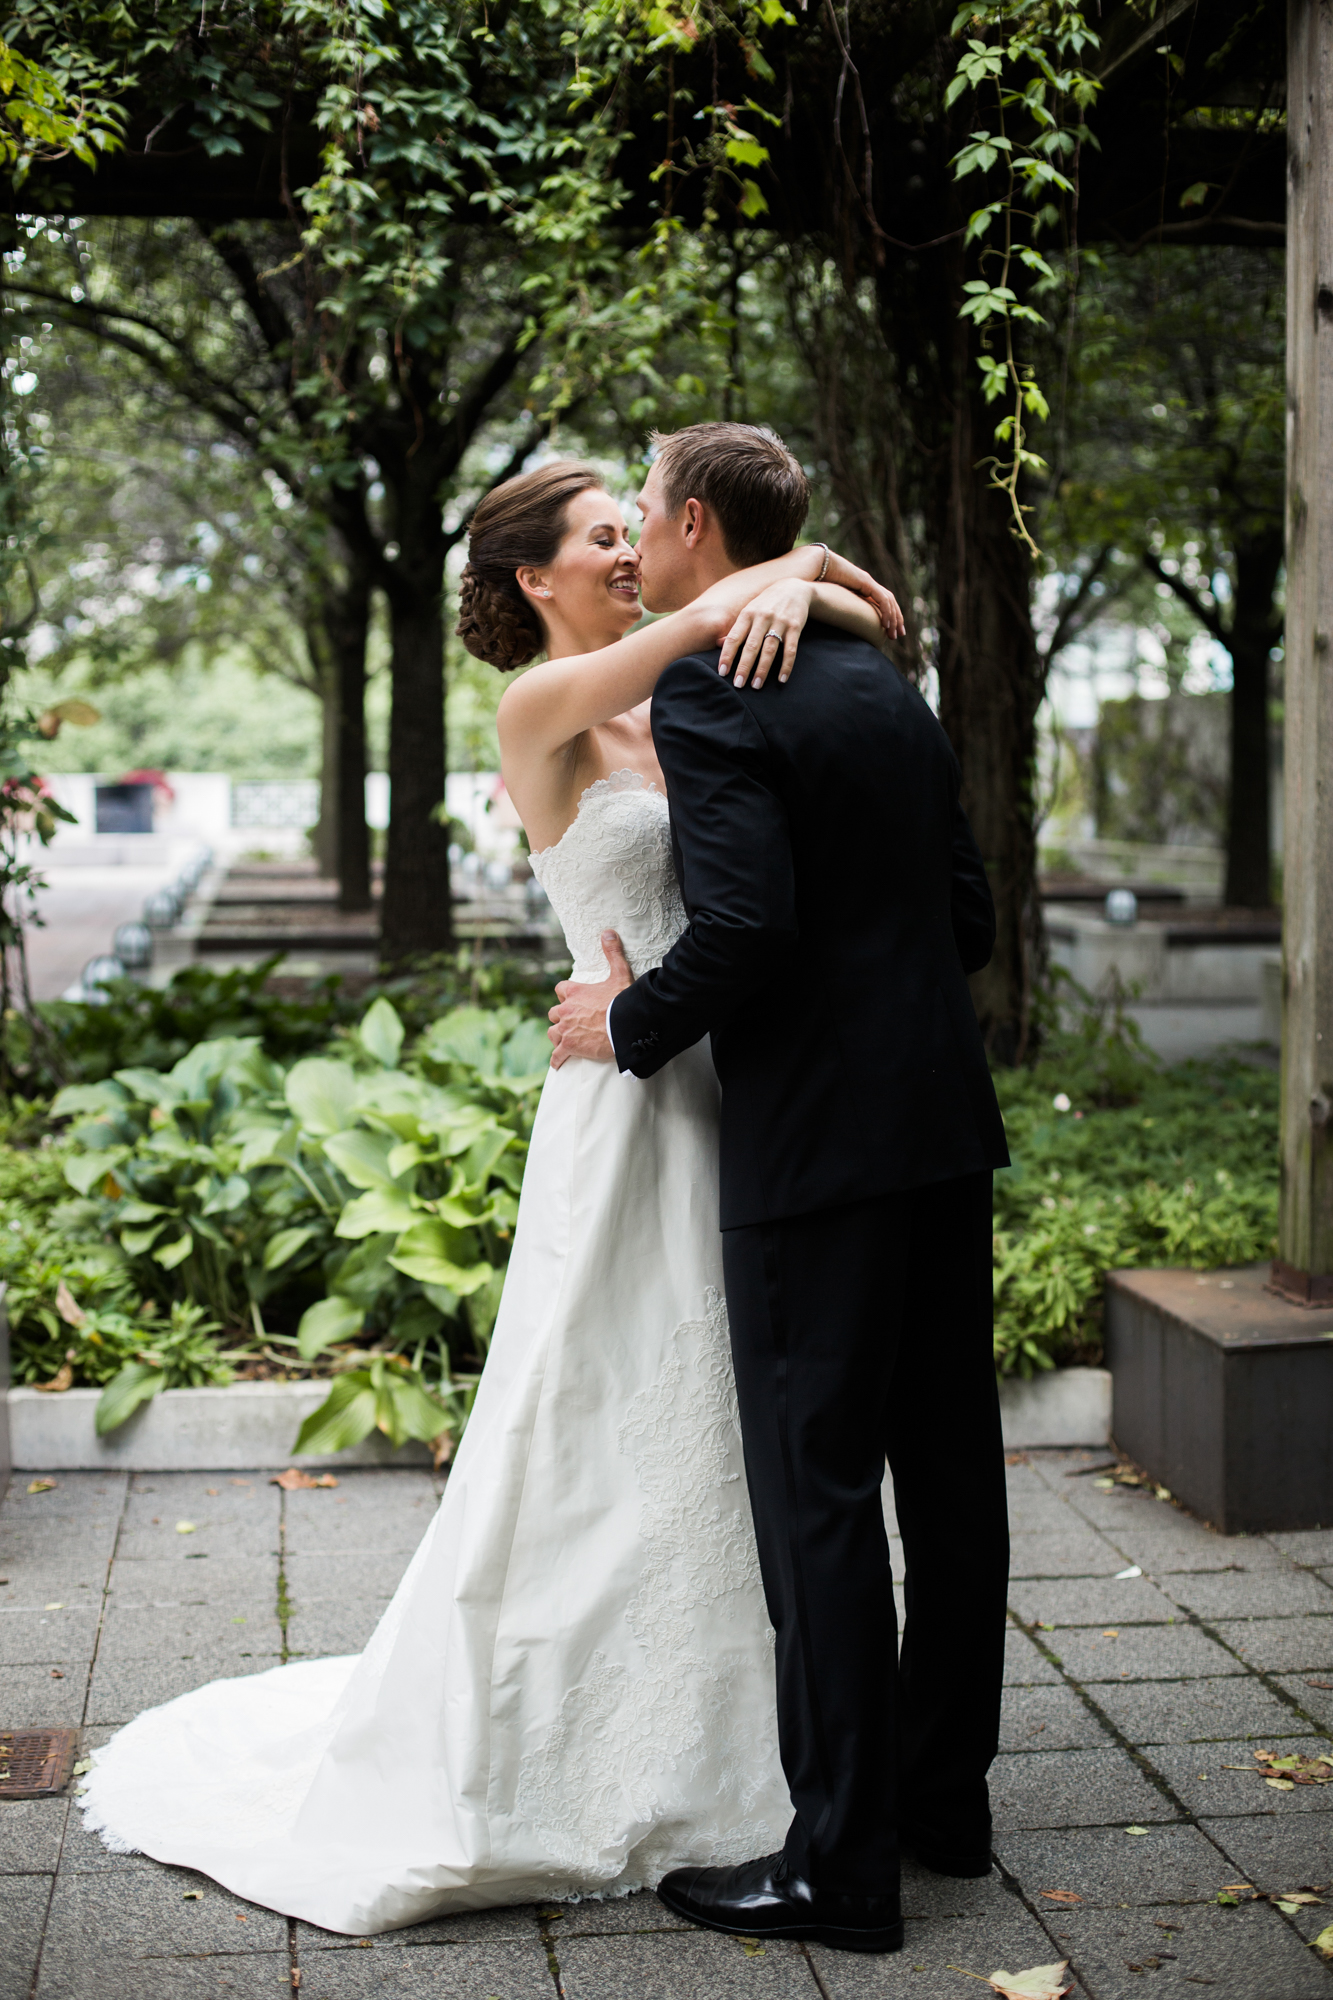 Wedding day first look at garden in downtown Chicago